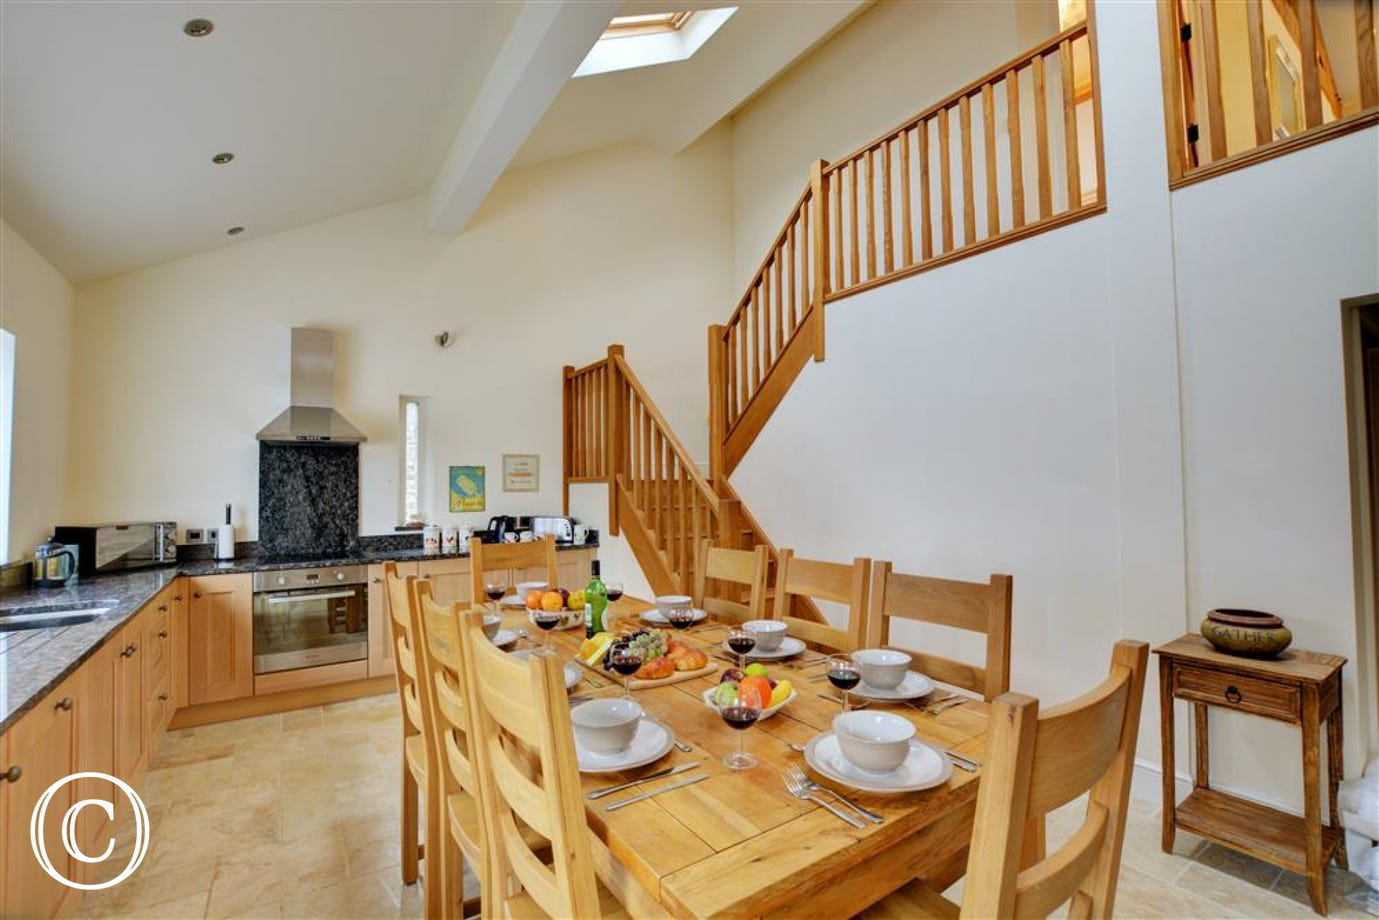 Kitchen and dining area with underfloor heating